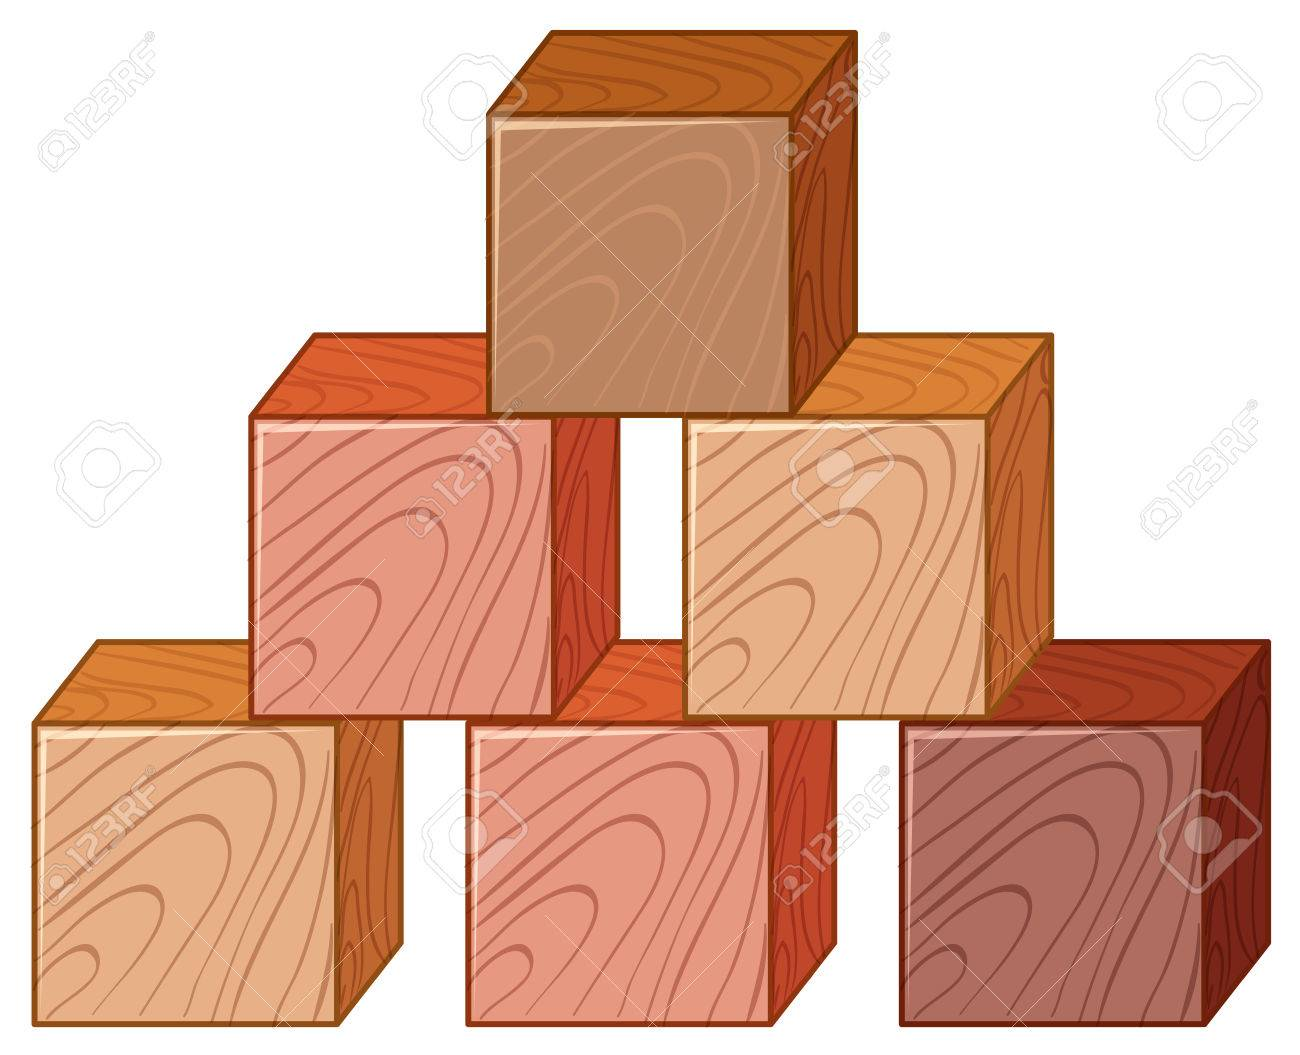 Wooden cubes in stack illustration.